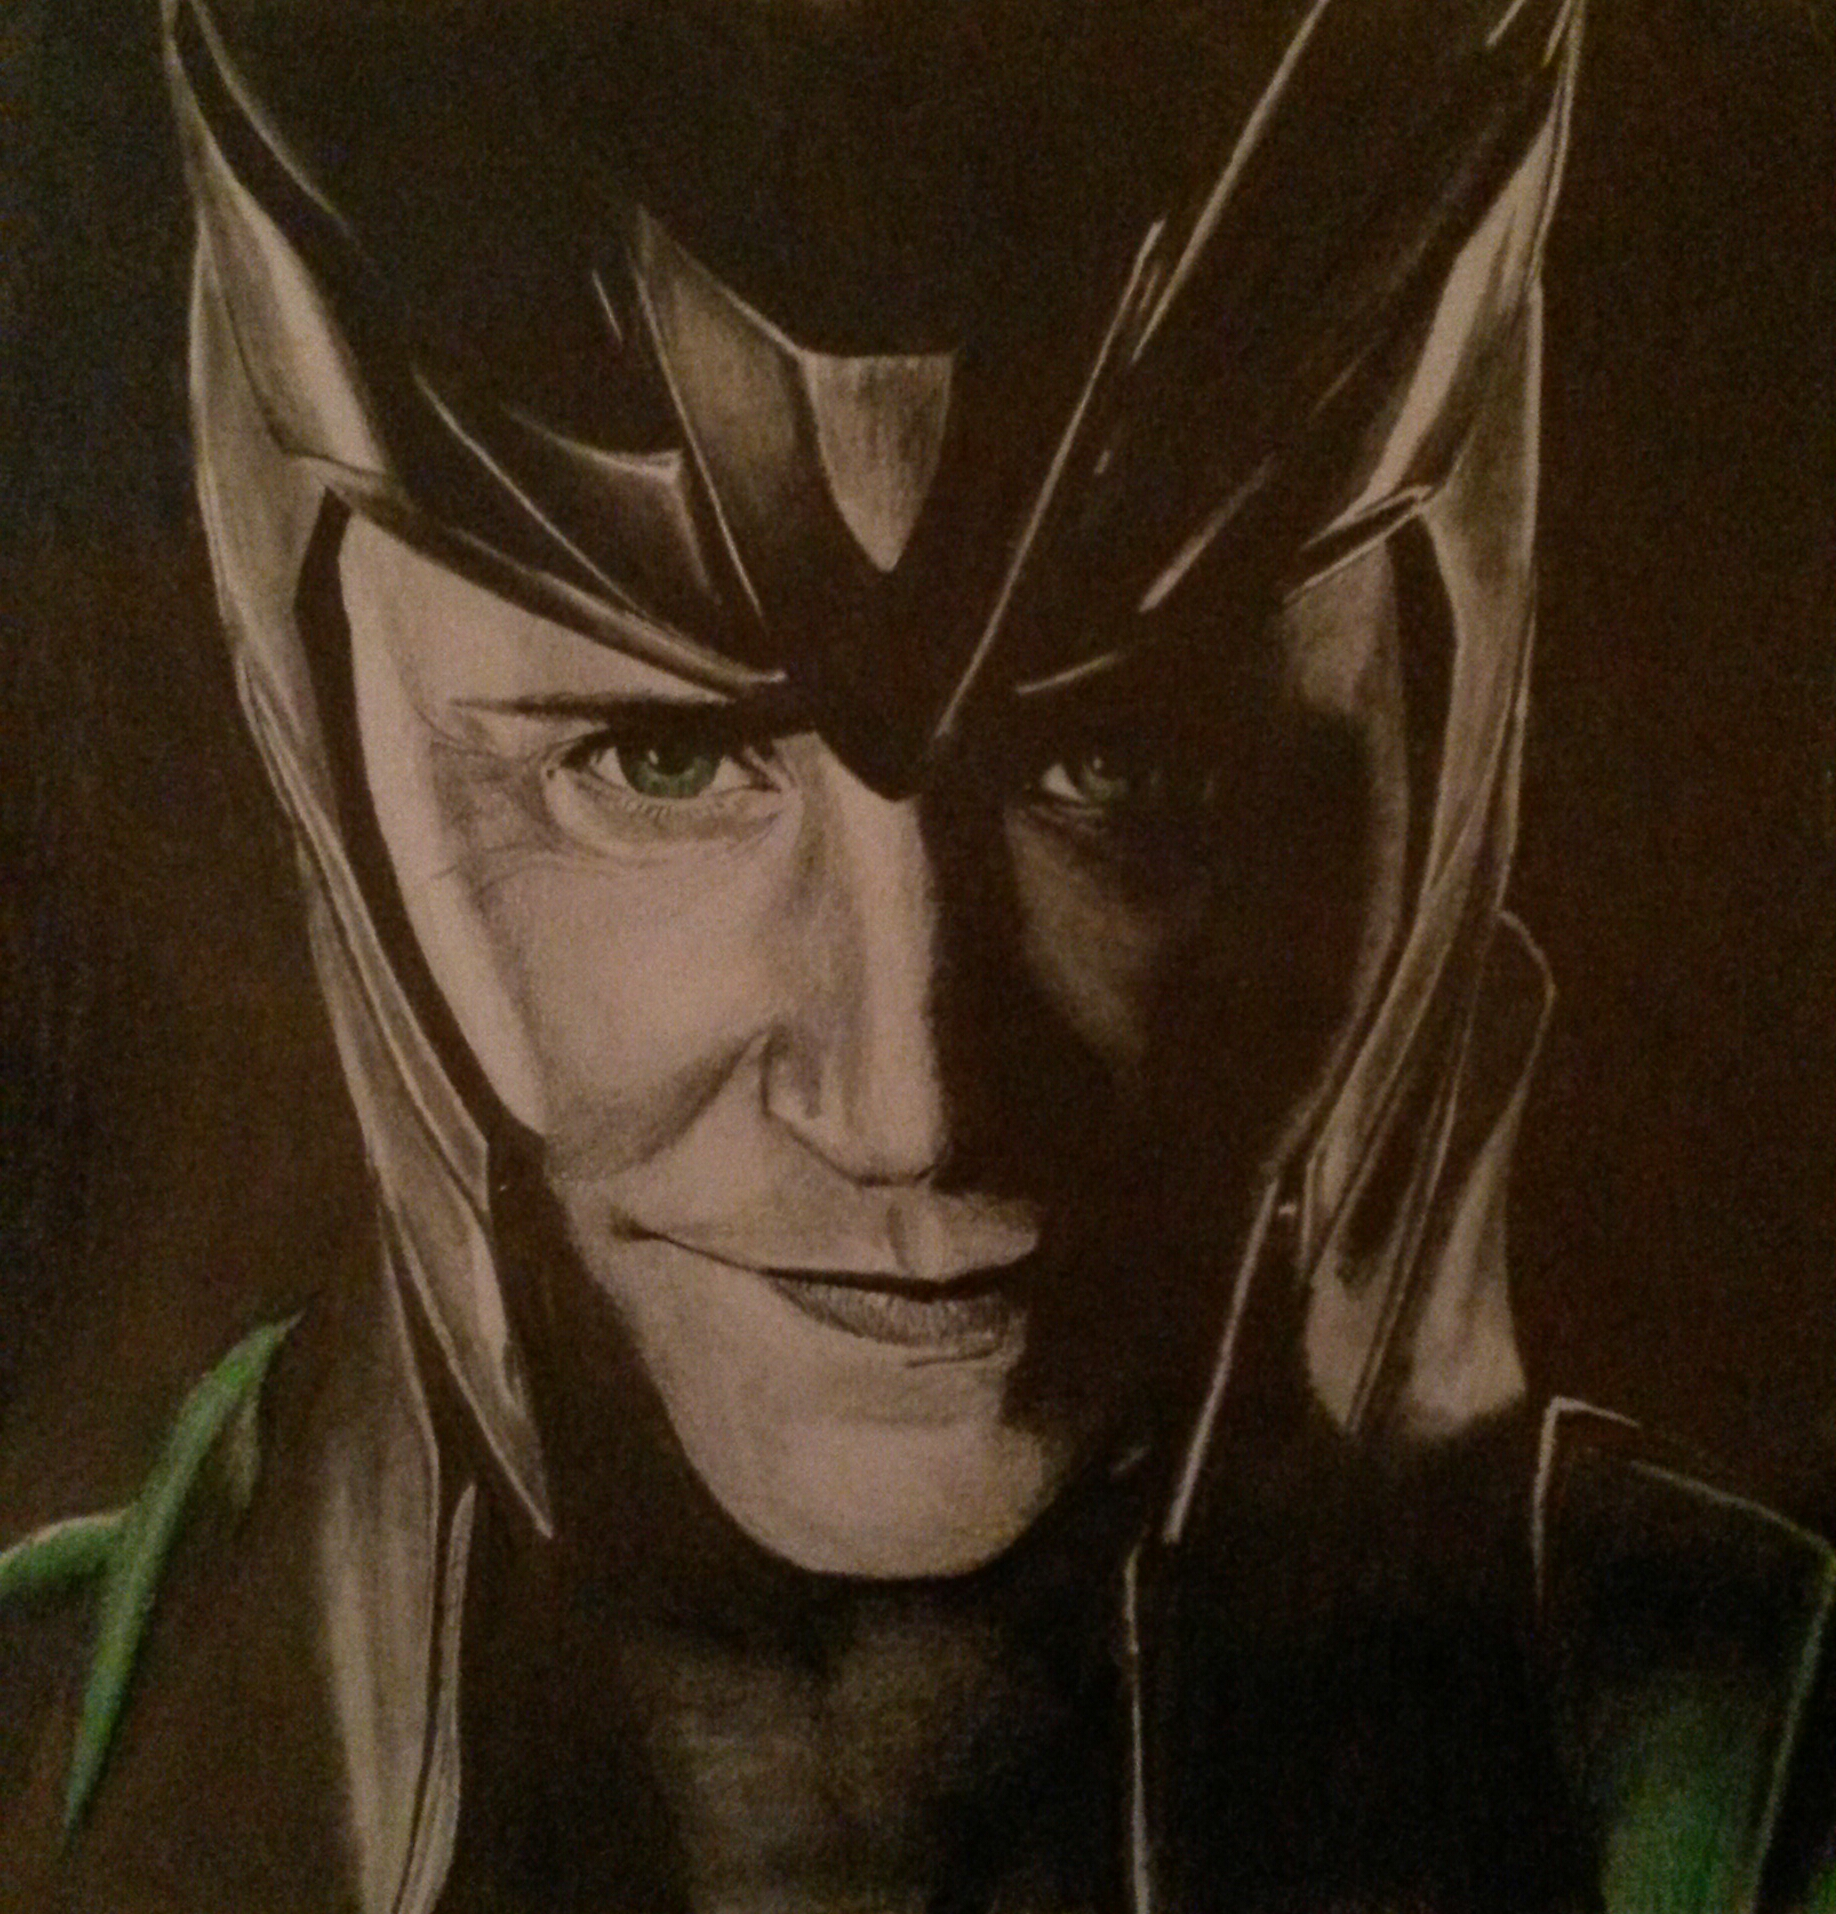 Loki God of Mischief by tofu0004 on DeviantArt